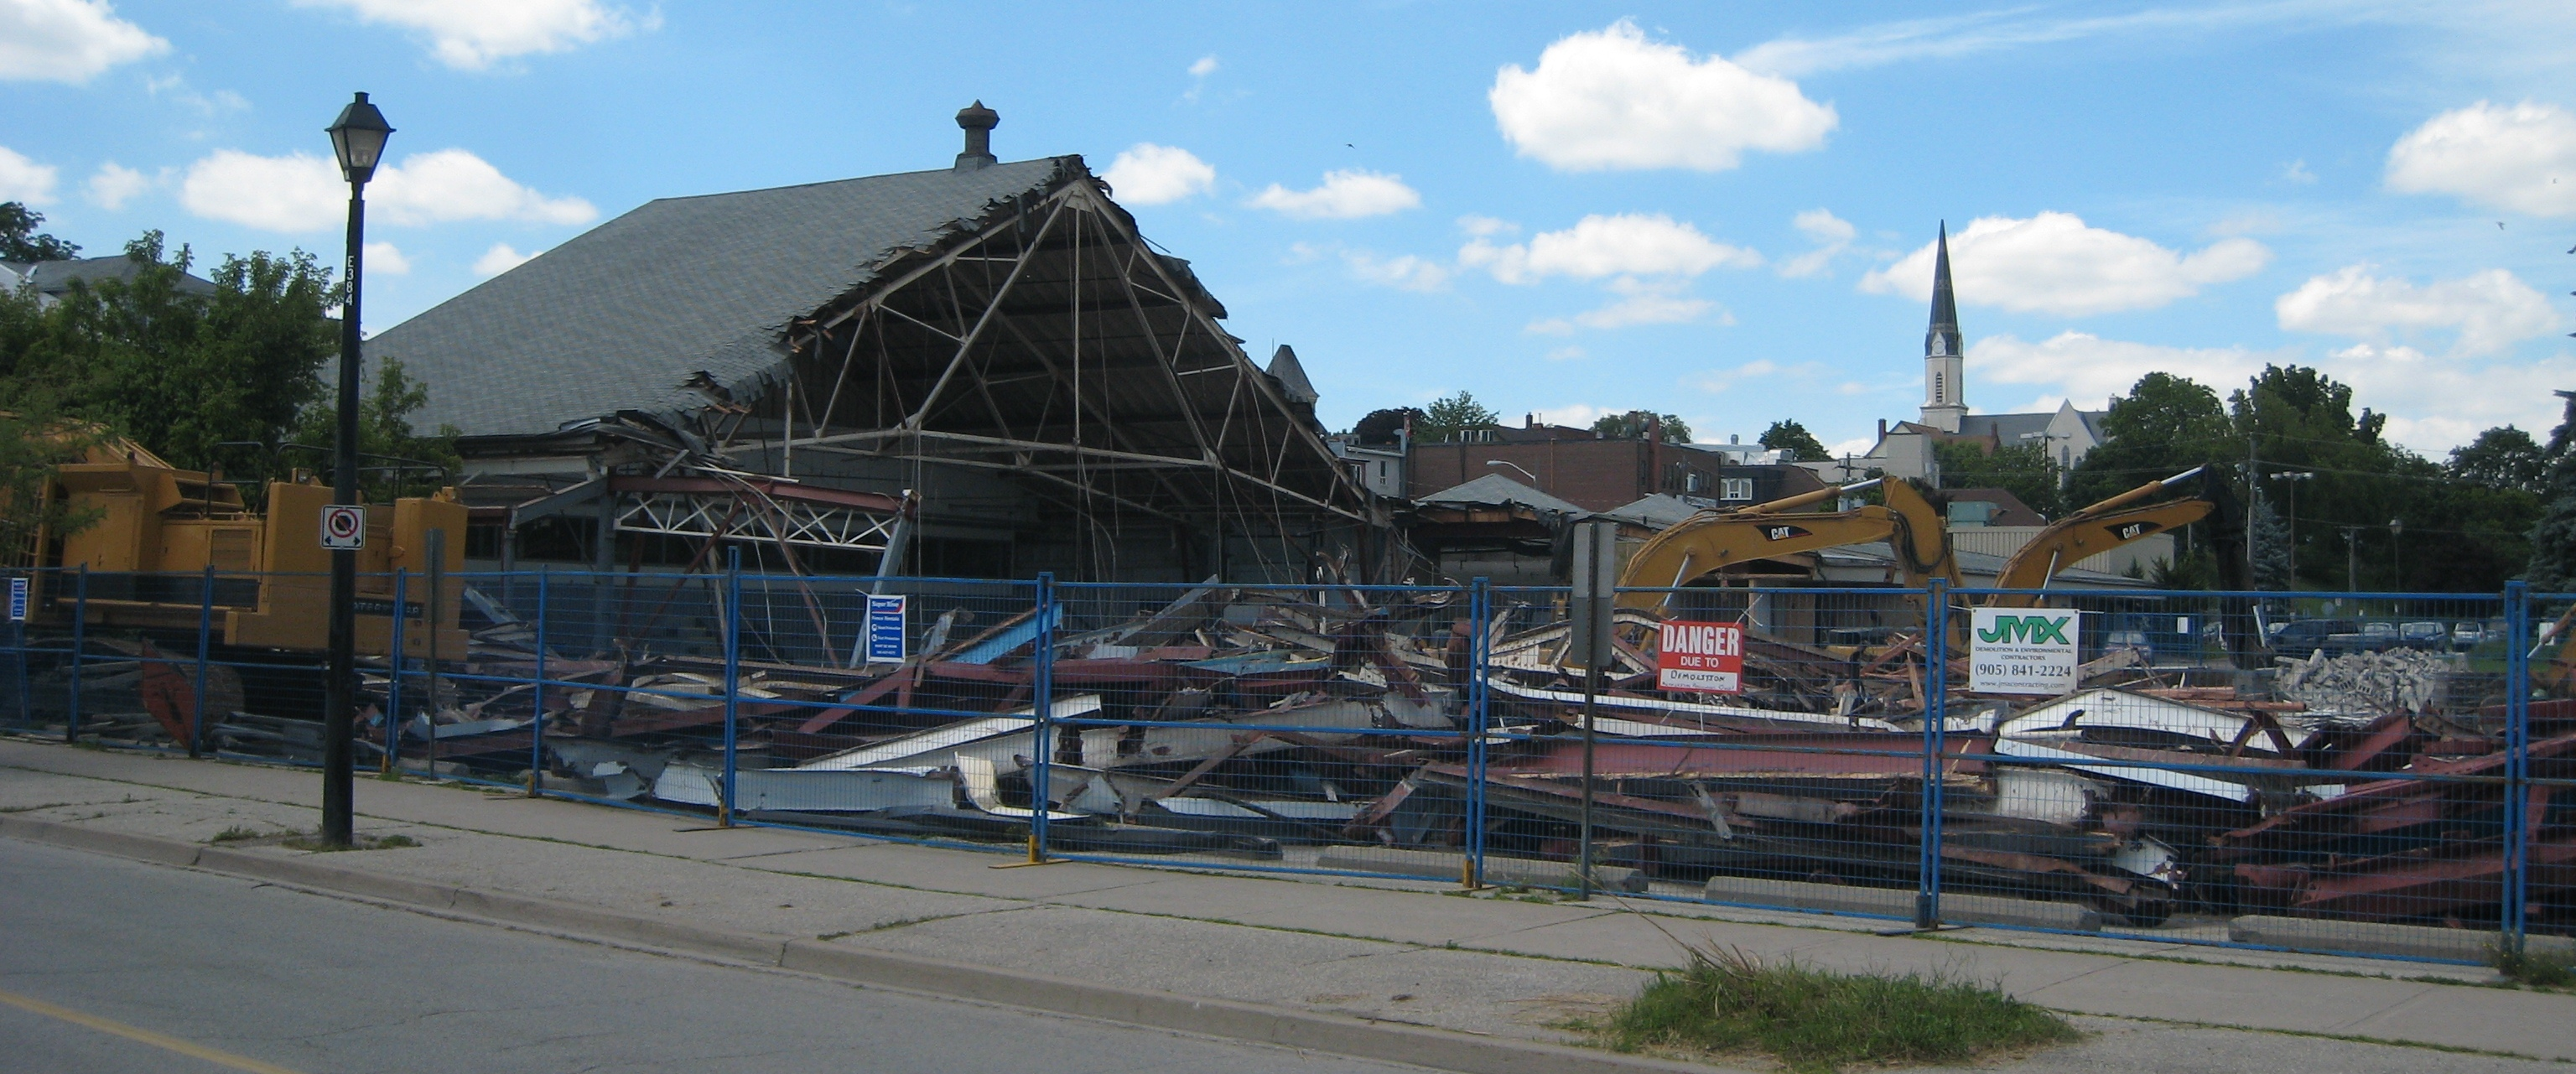 Partial demolition of the Community Arena in June 2010